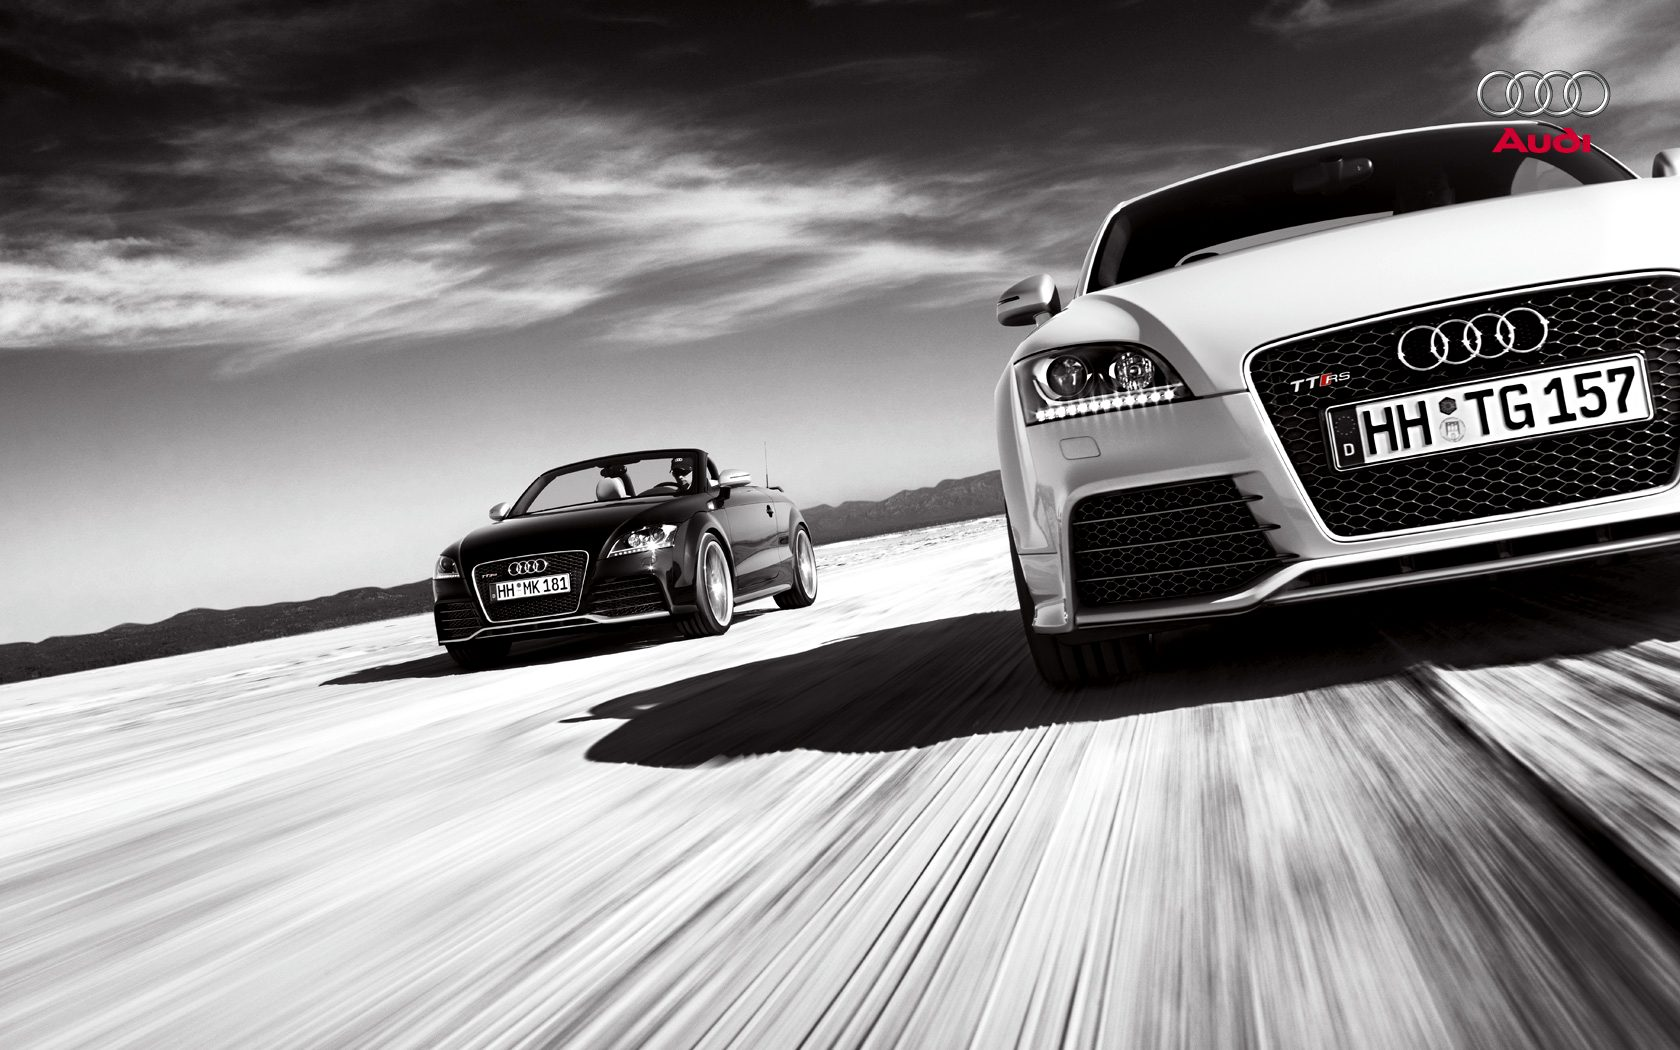 Audi TTRS Res: 1680x1050 / Size:251kb. Views: 25410